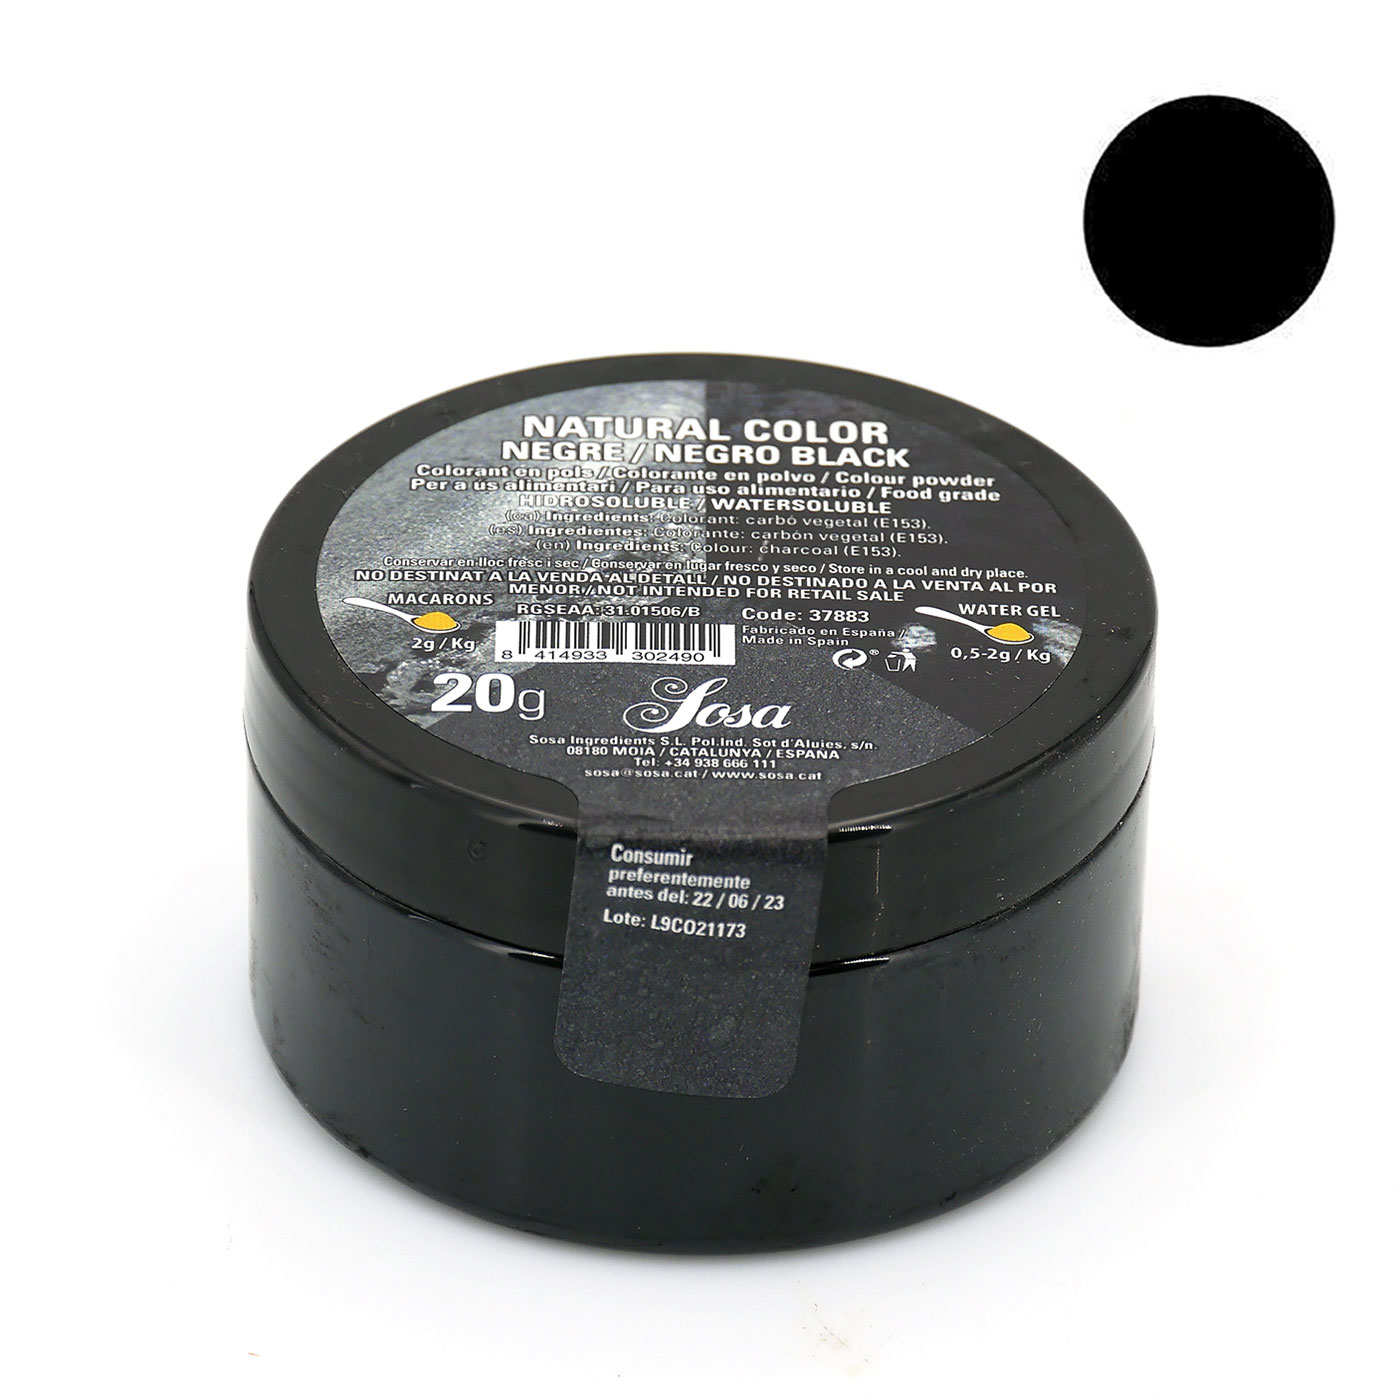 Black colouring powder - non-azoic and water-soluble